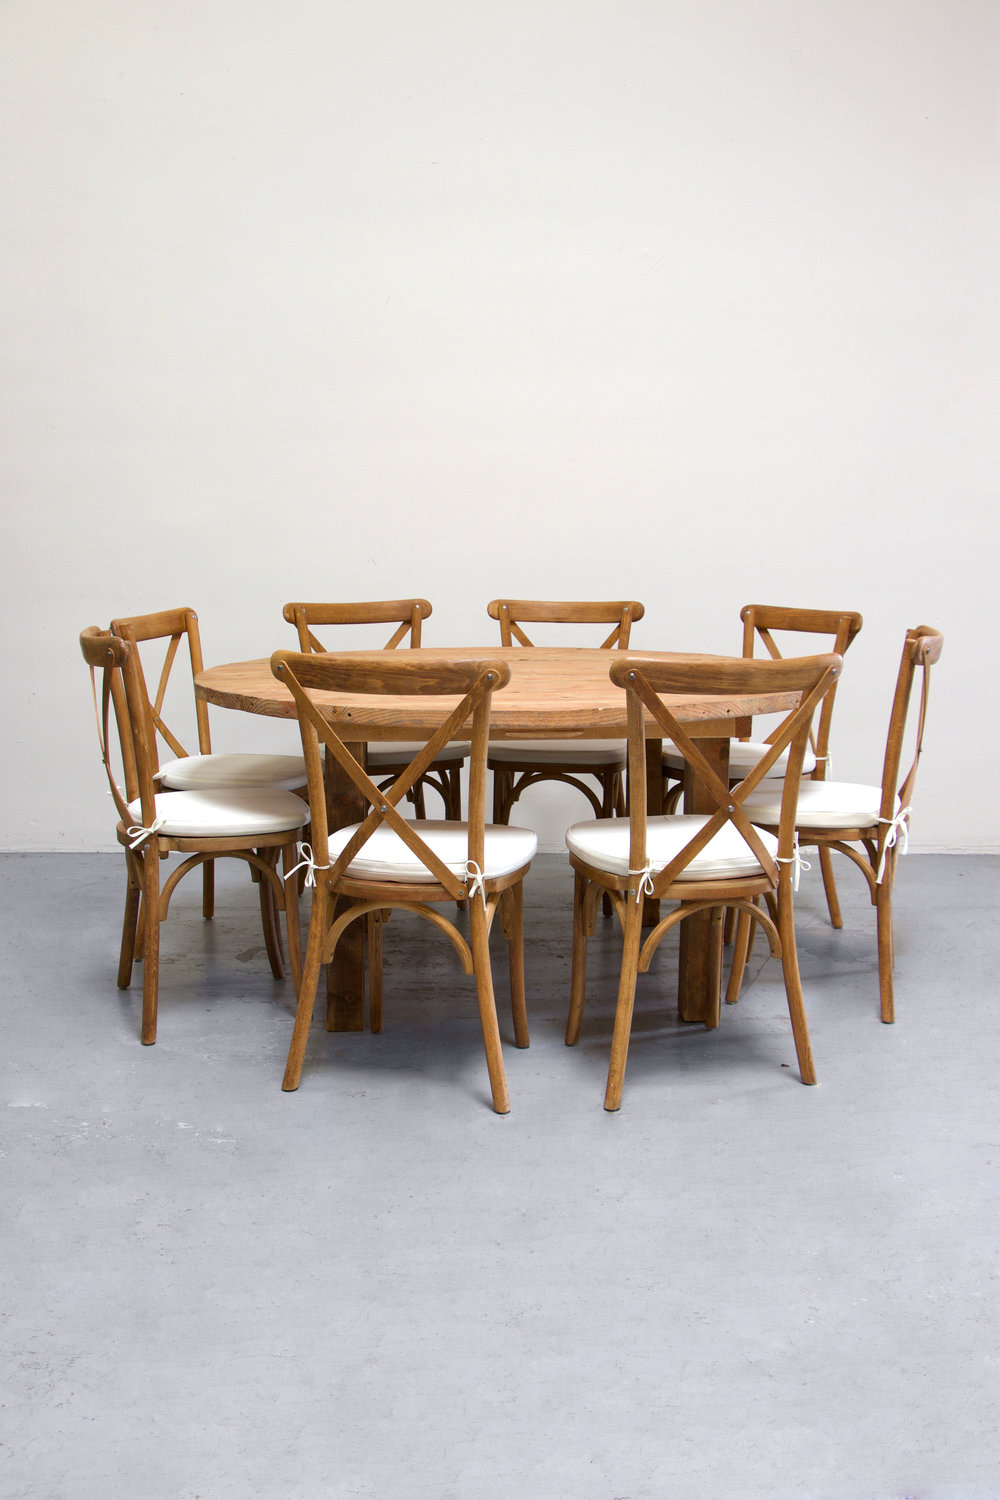 $145 Honey Brown Round Farm Table w/ 8 Cross-Back Chairs